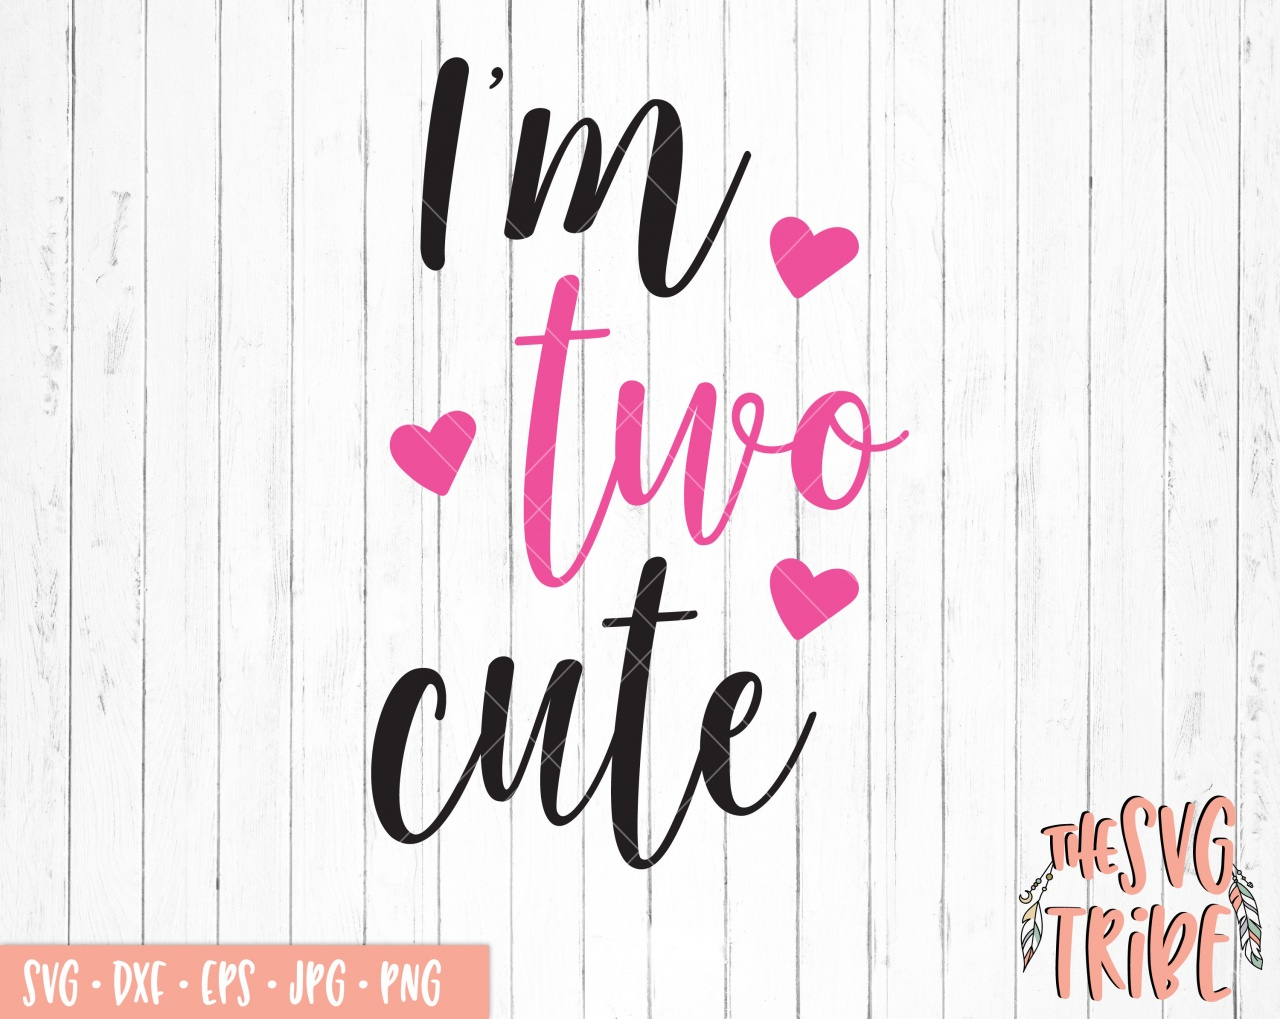 Free Svg Files For Vinyl Download Girls Night Svg Cut File And Create Your Personal Equalmarriagefl Vinyl From Free Svg Files For Vinyl Pictures